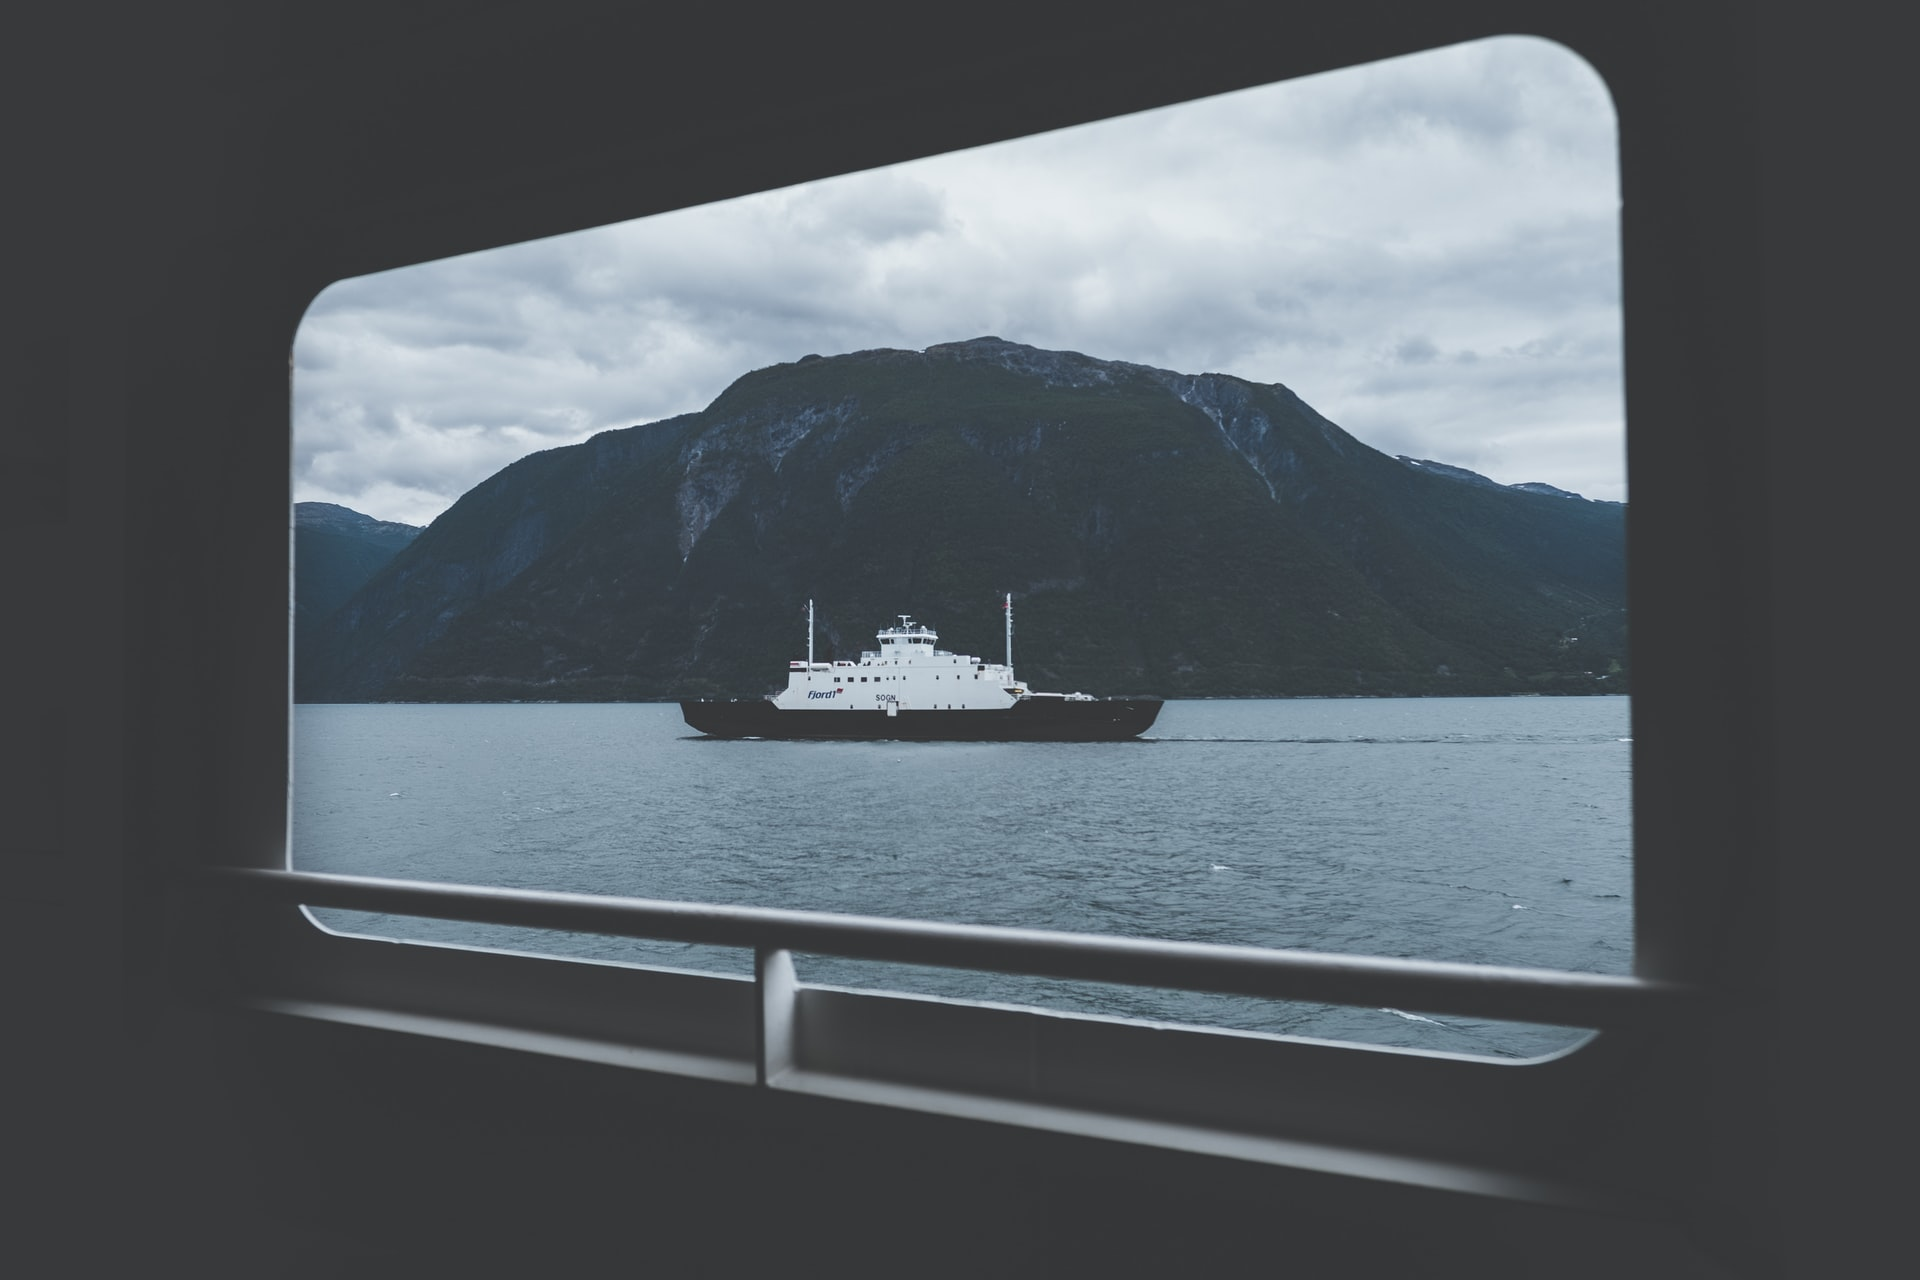 Ship on a body of water in front of a mountain. Photo courtesy of Oskars Sylwan on Unsplash.